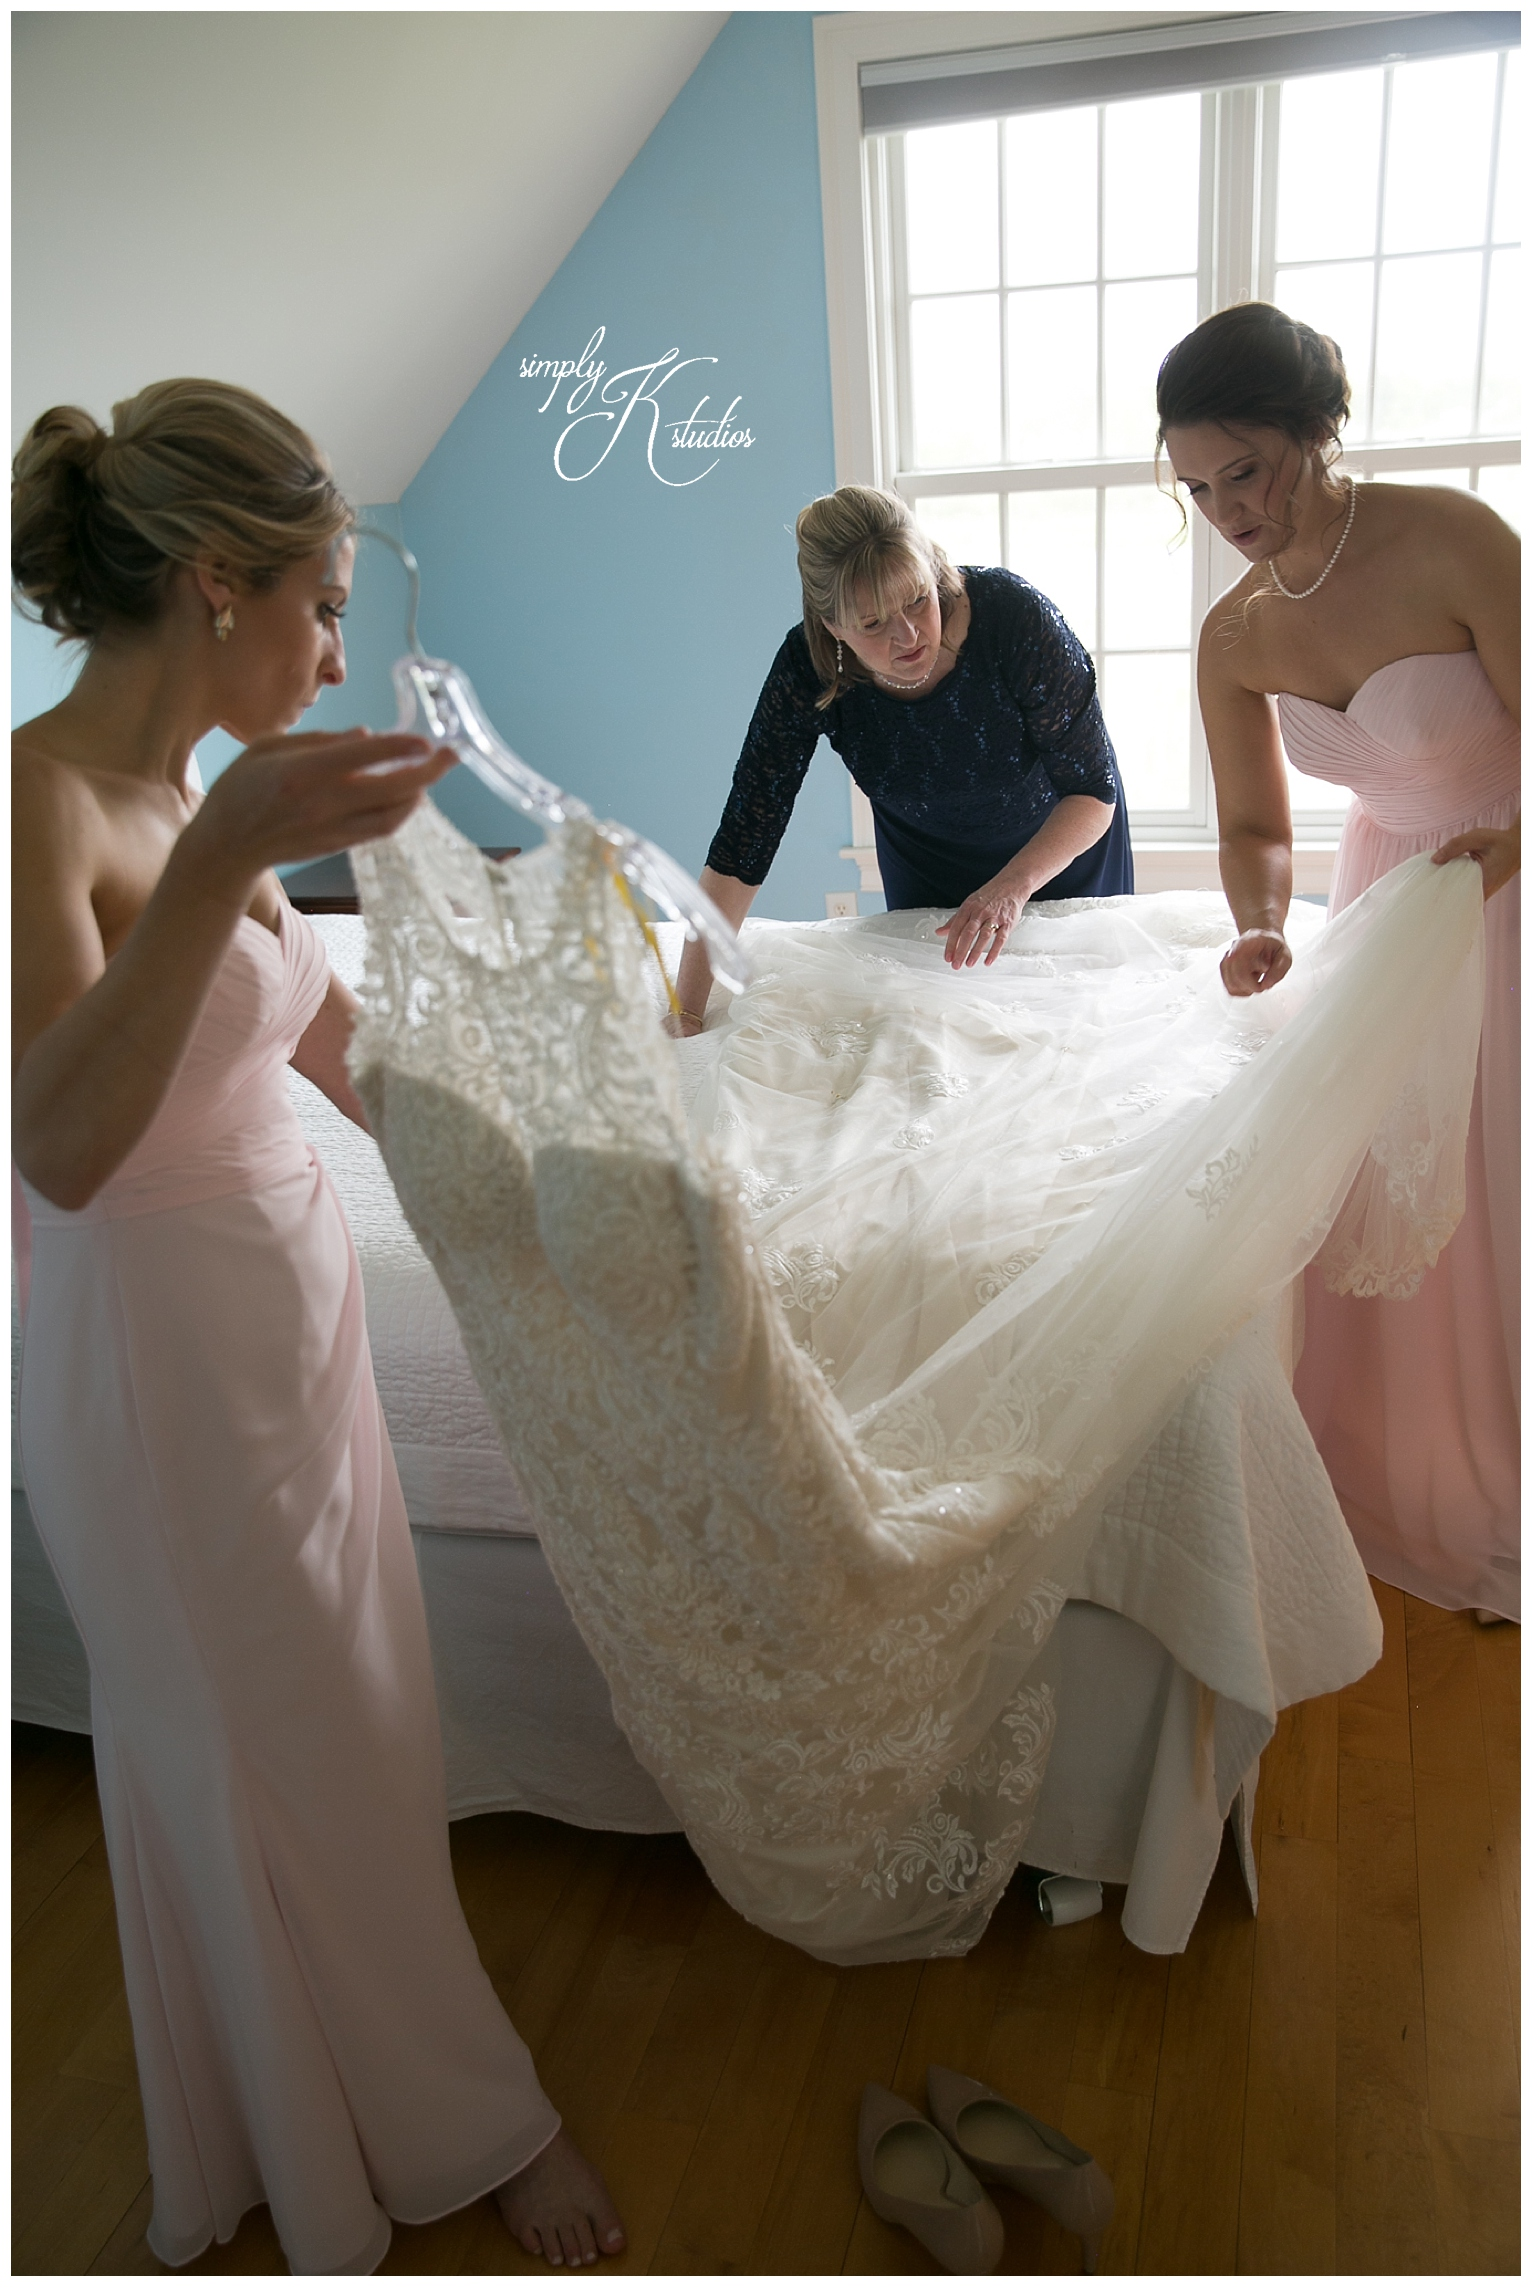 Getting Ready Photos at The Lace Factory.jpg